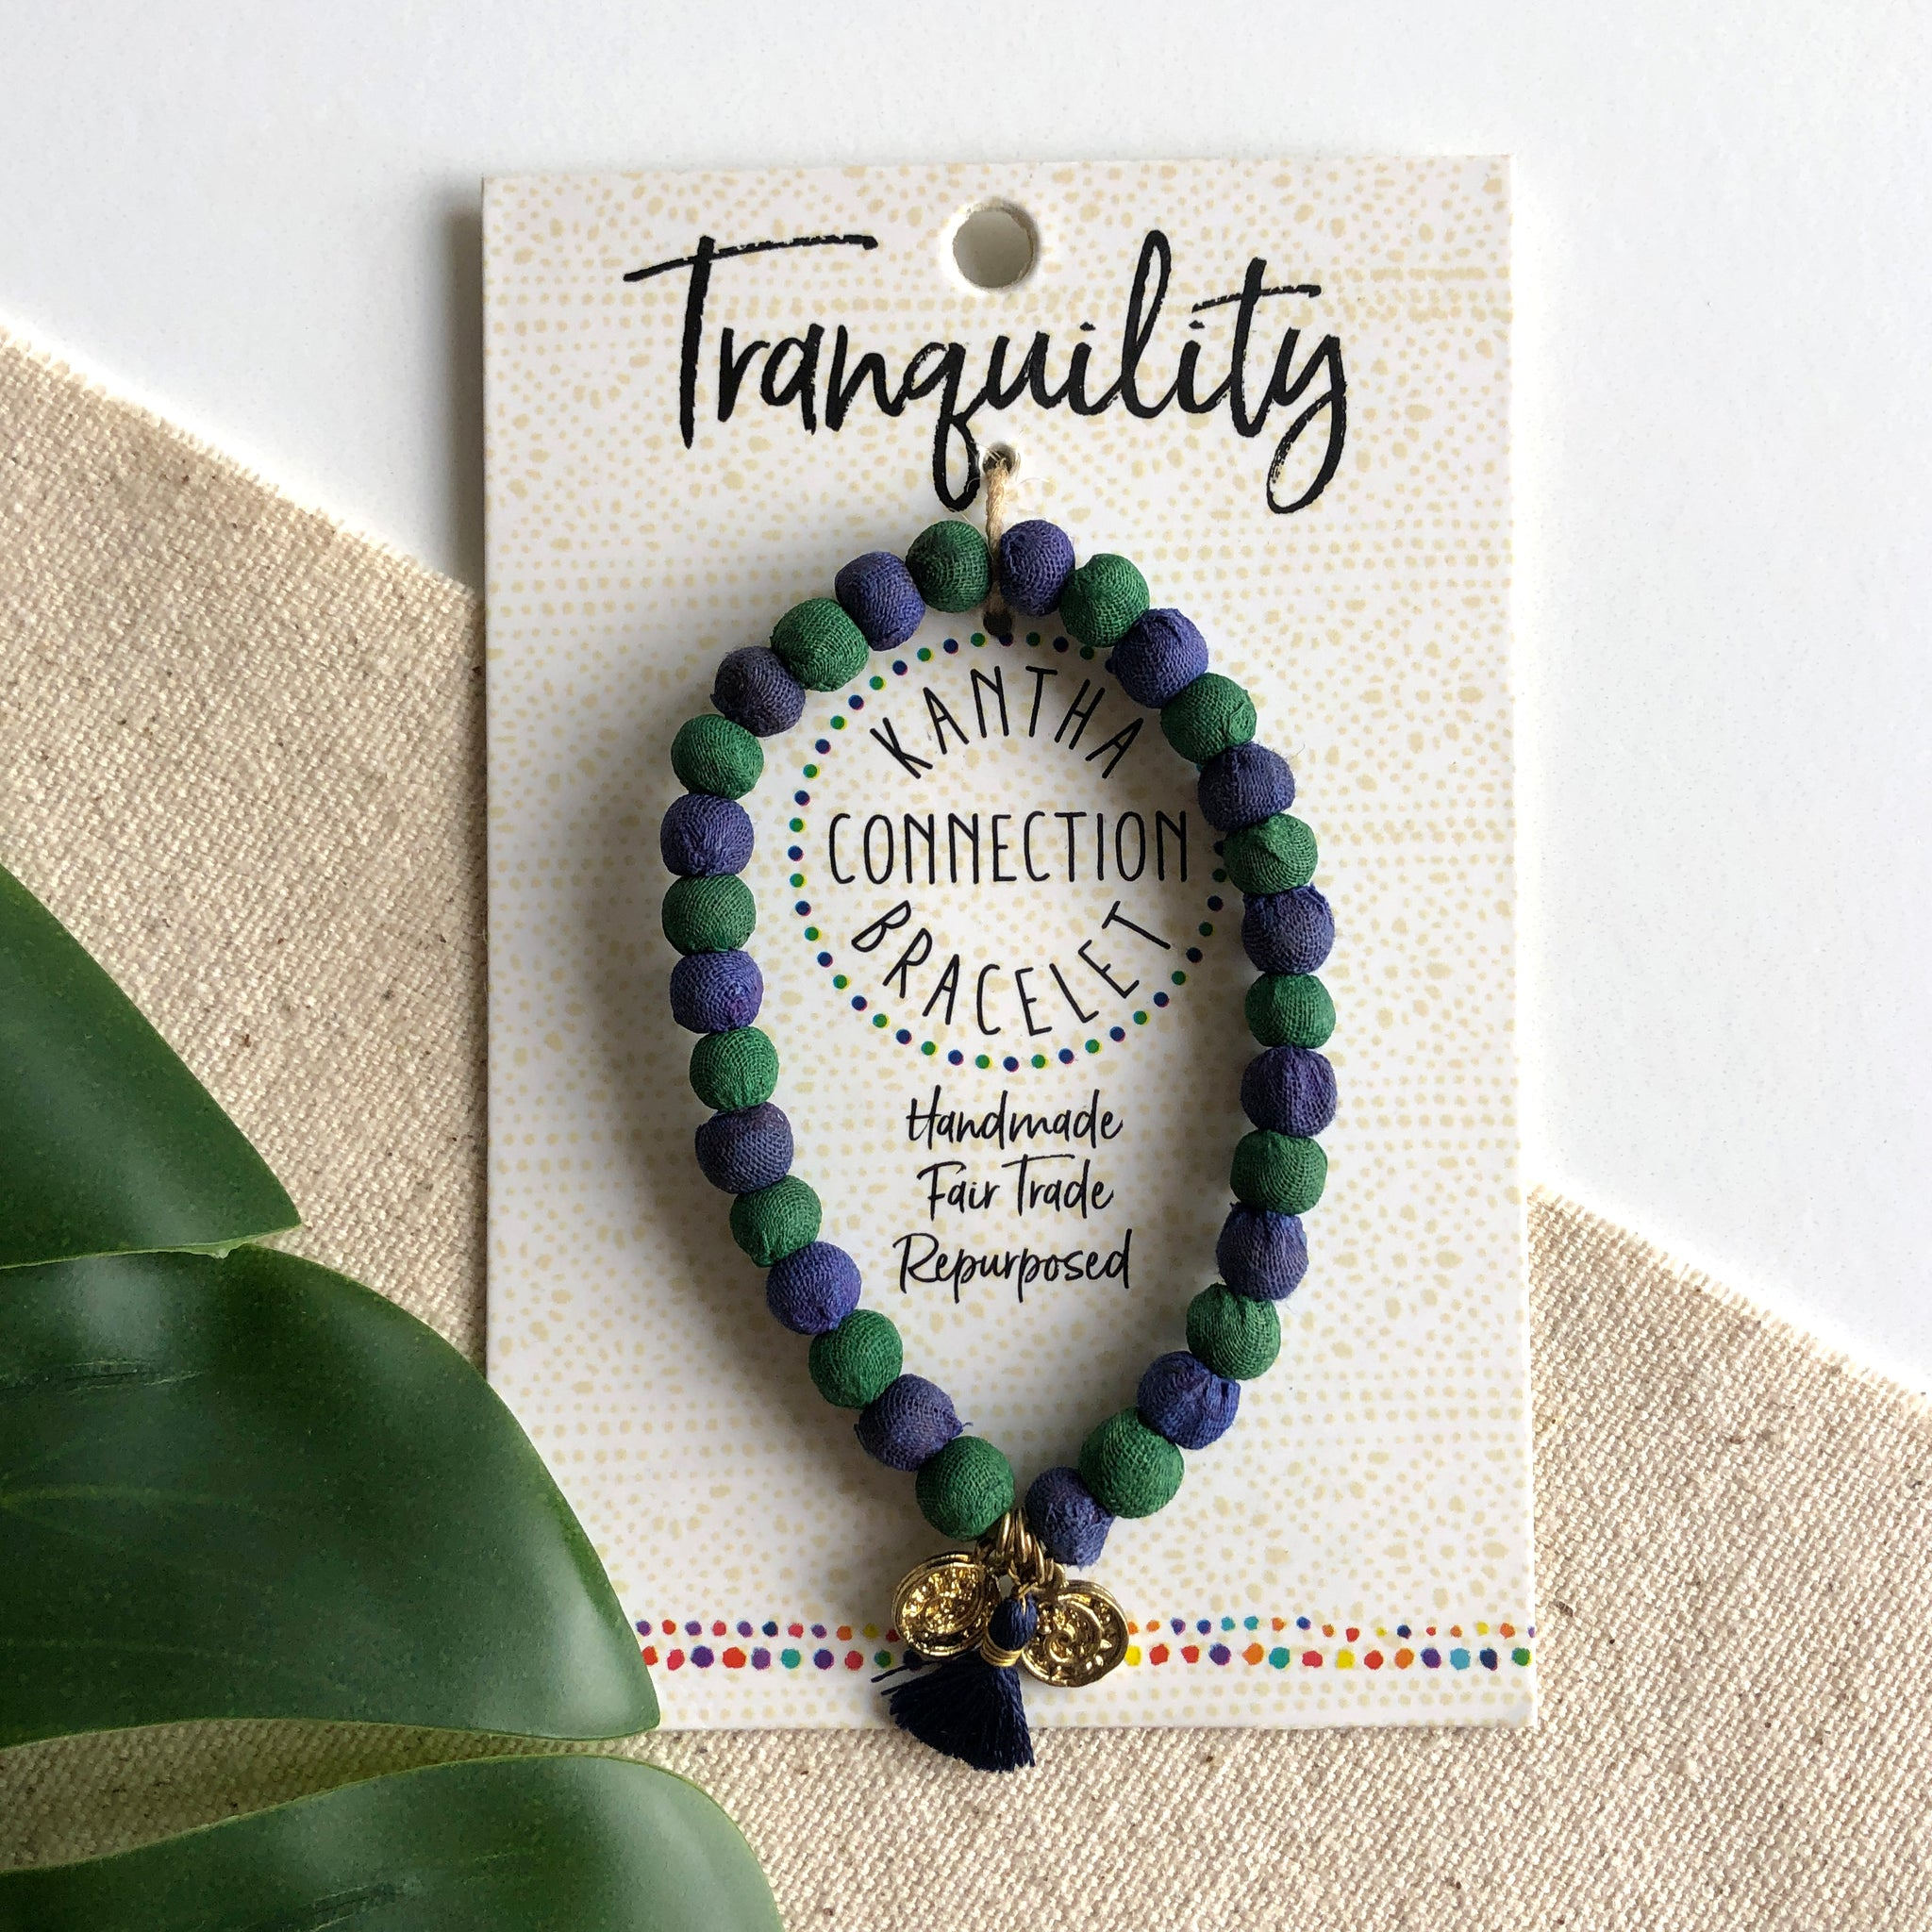 Kantha Connection Bracelet: Tranquility